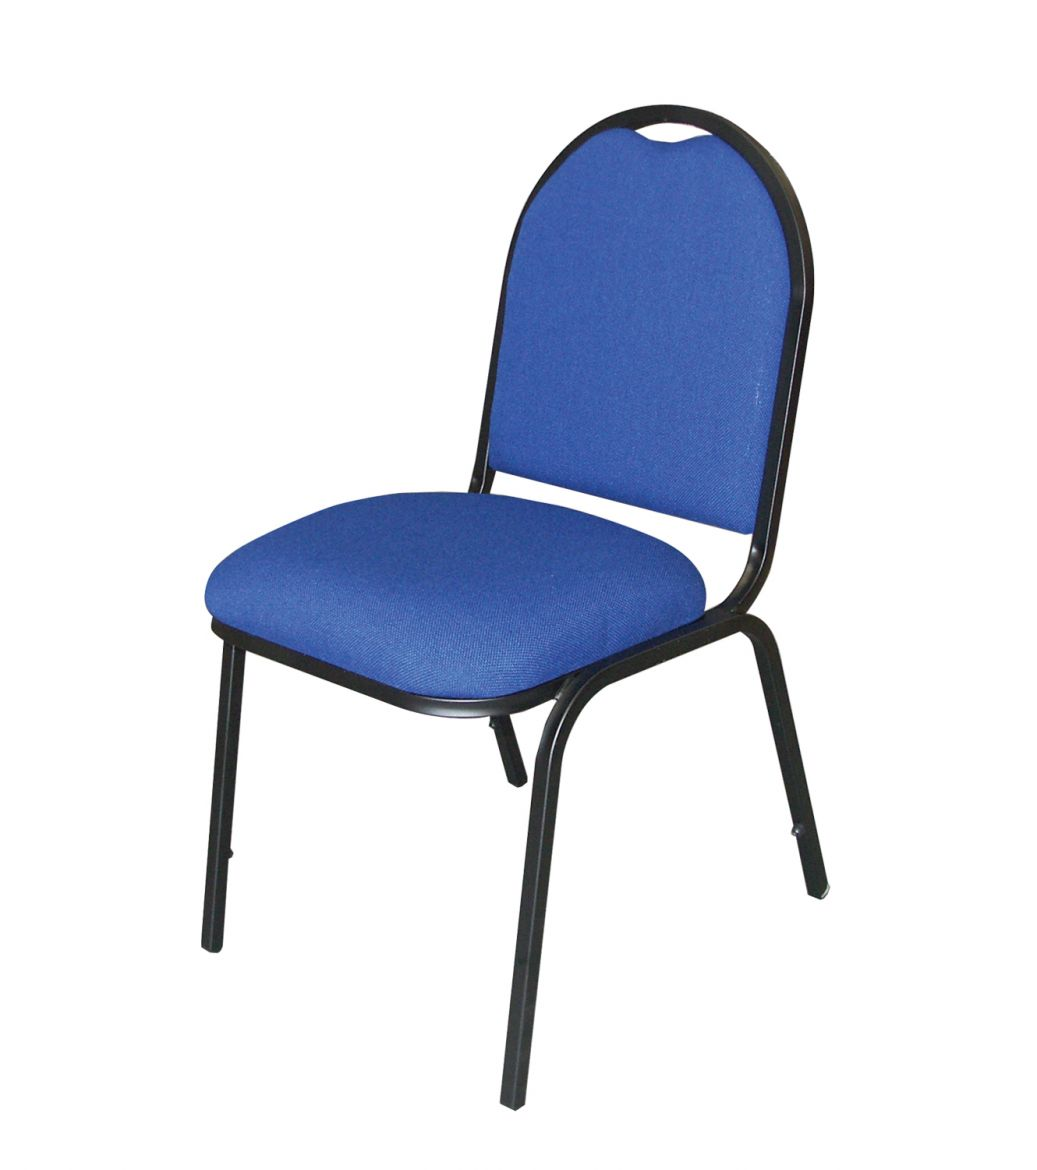 how to chair the meeting xxl fuf saltford 19 l5 chairs